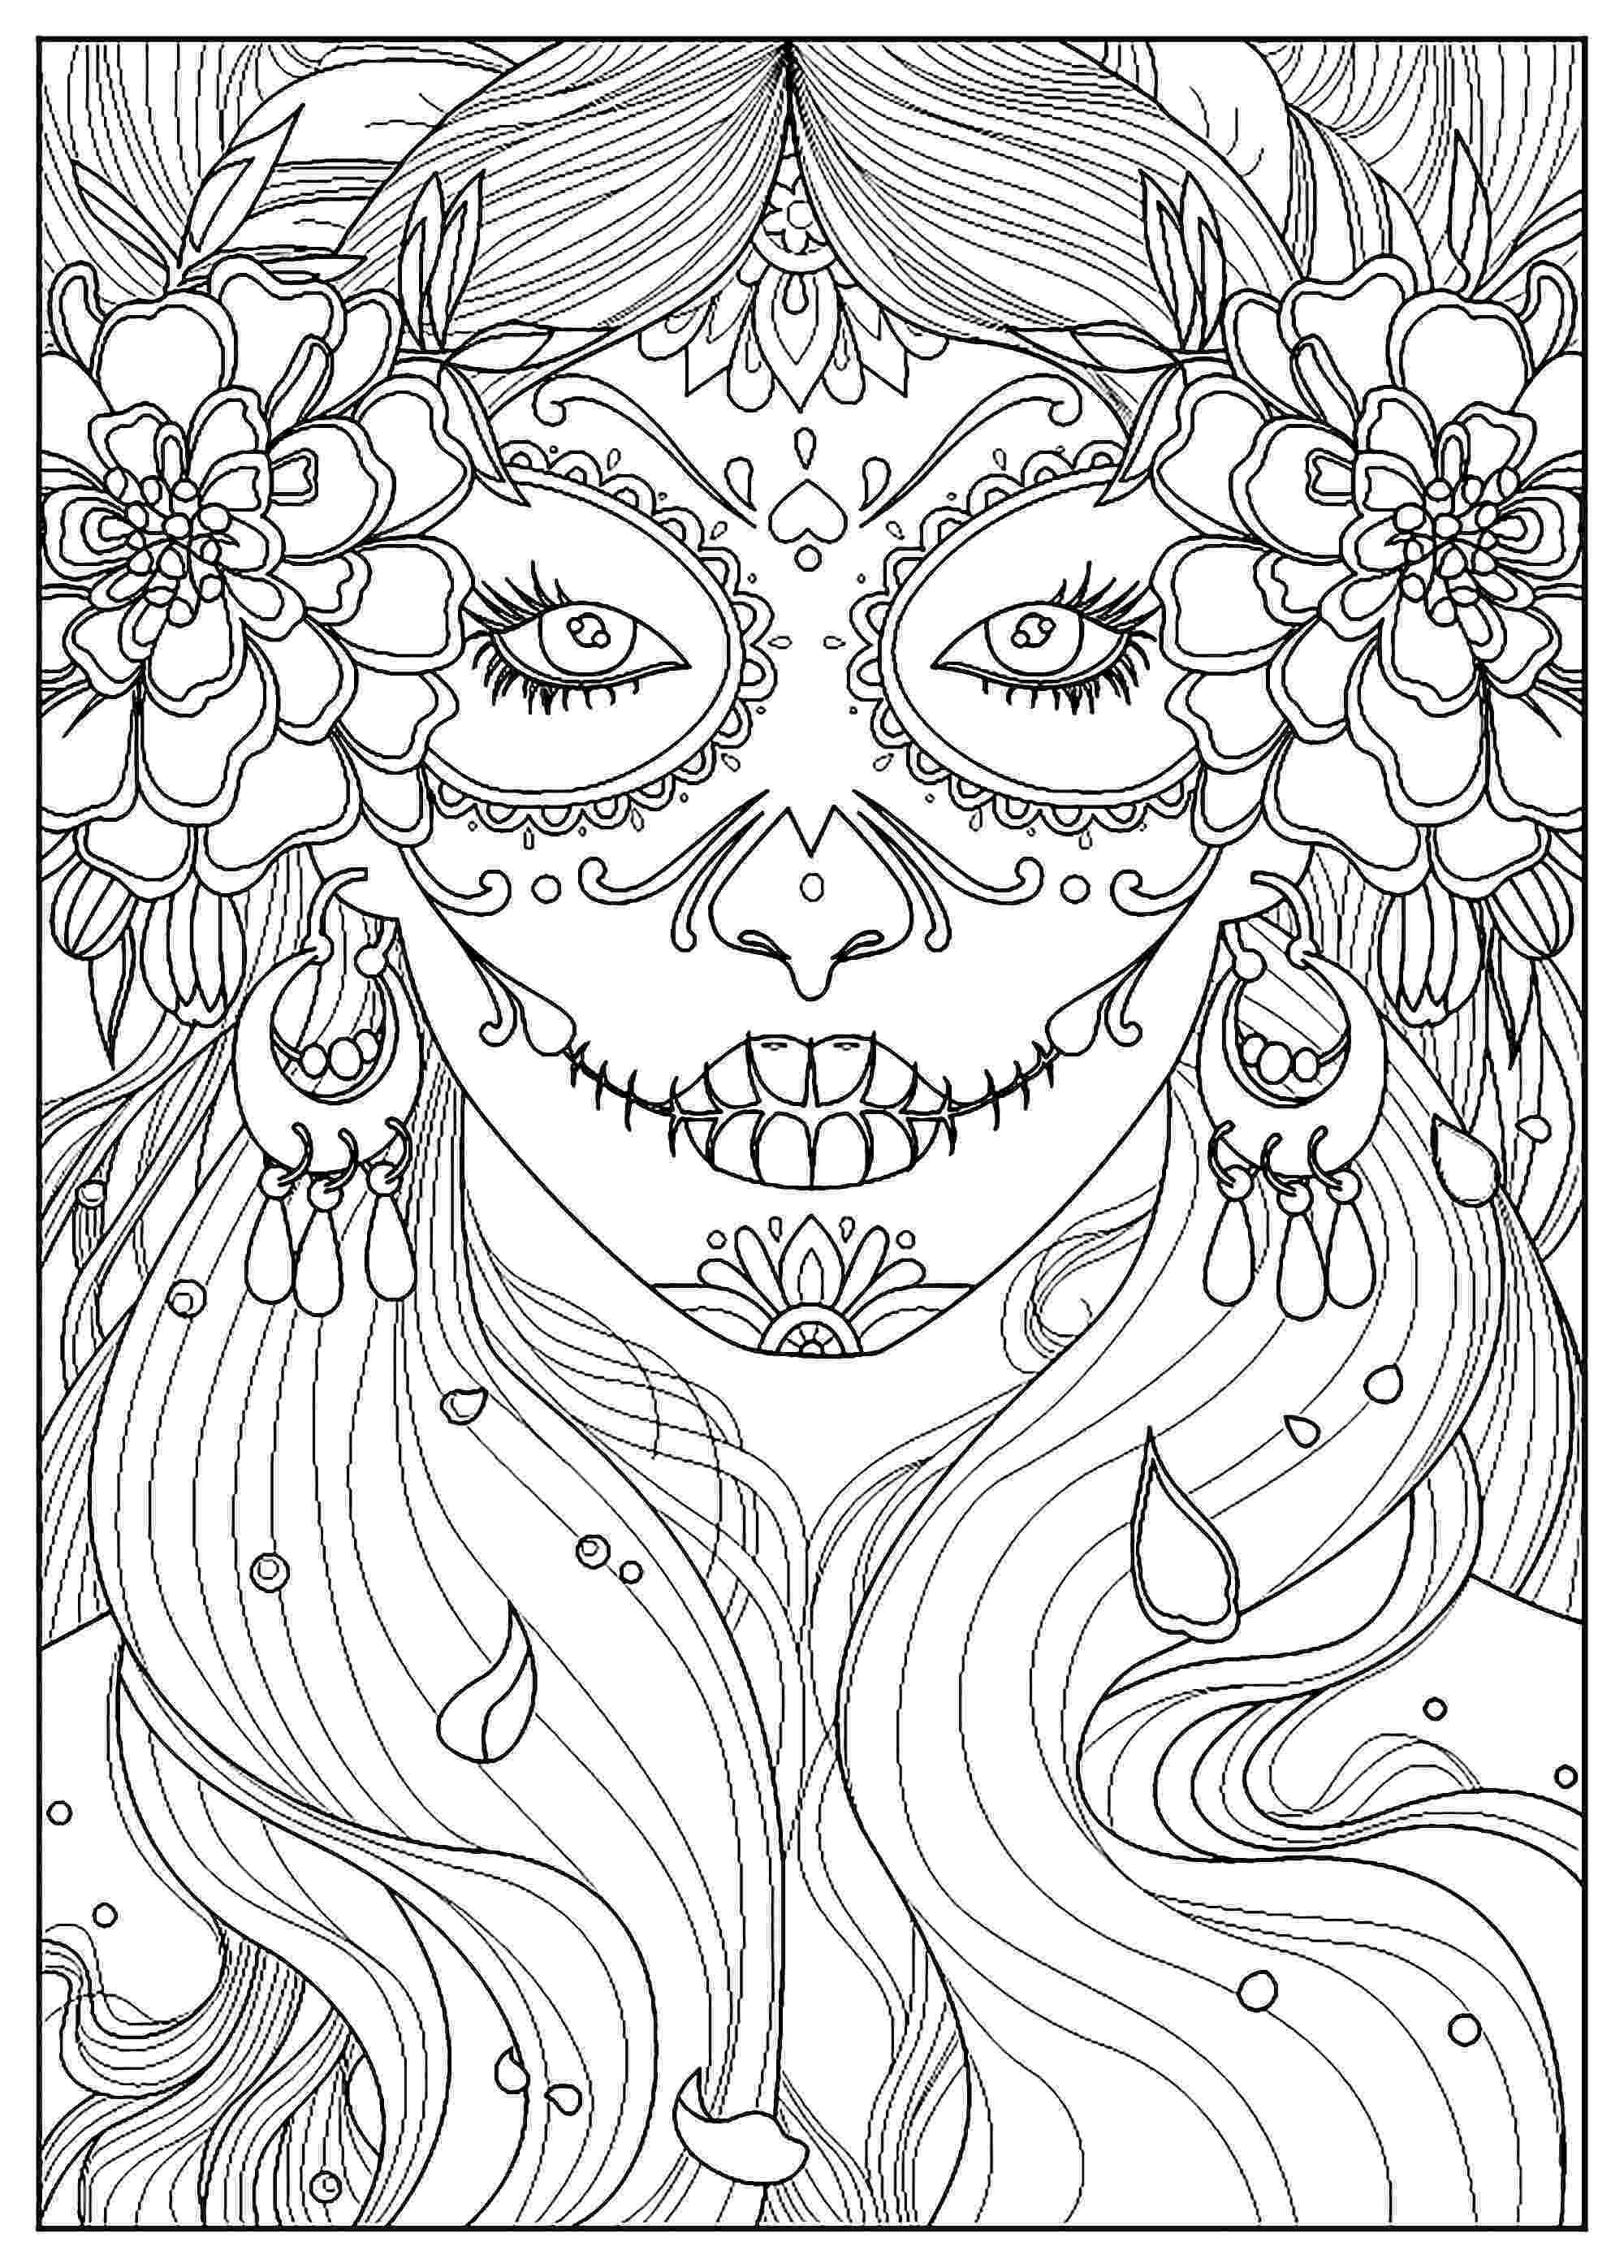 colouring pages adults day of the dead el día de los muertos adult coloring pages colouring adults pages